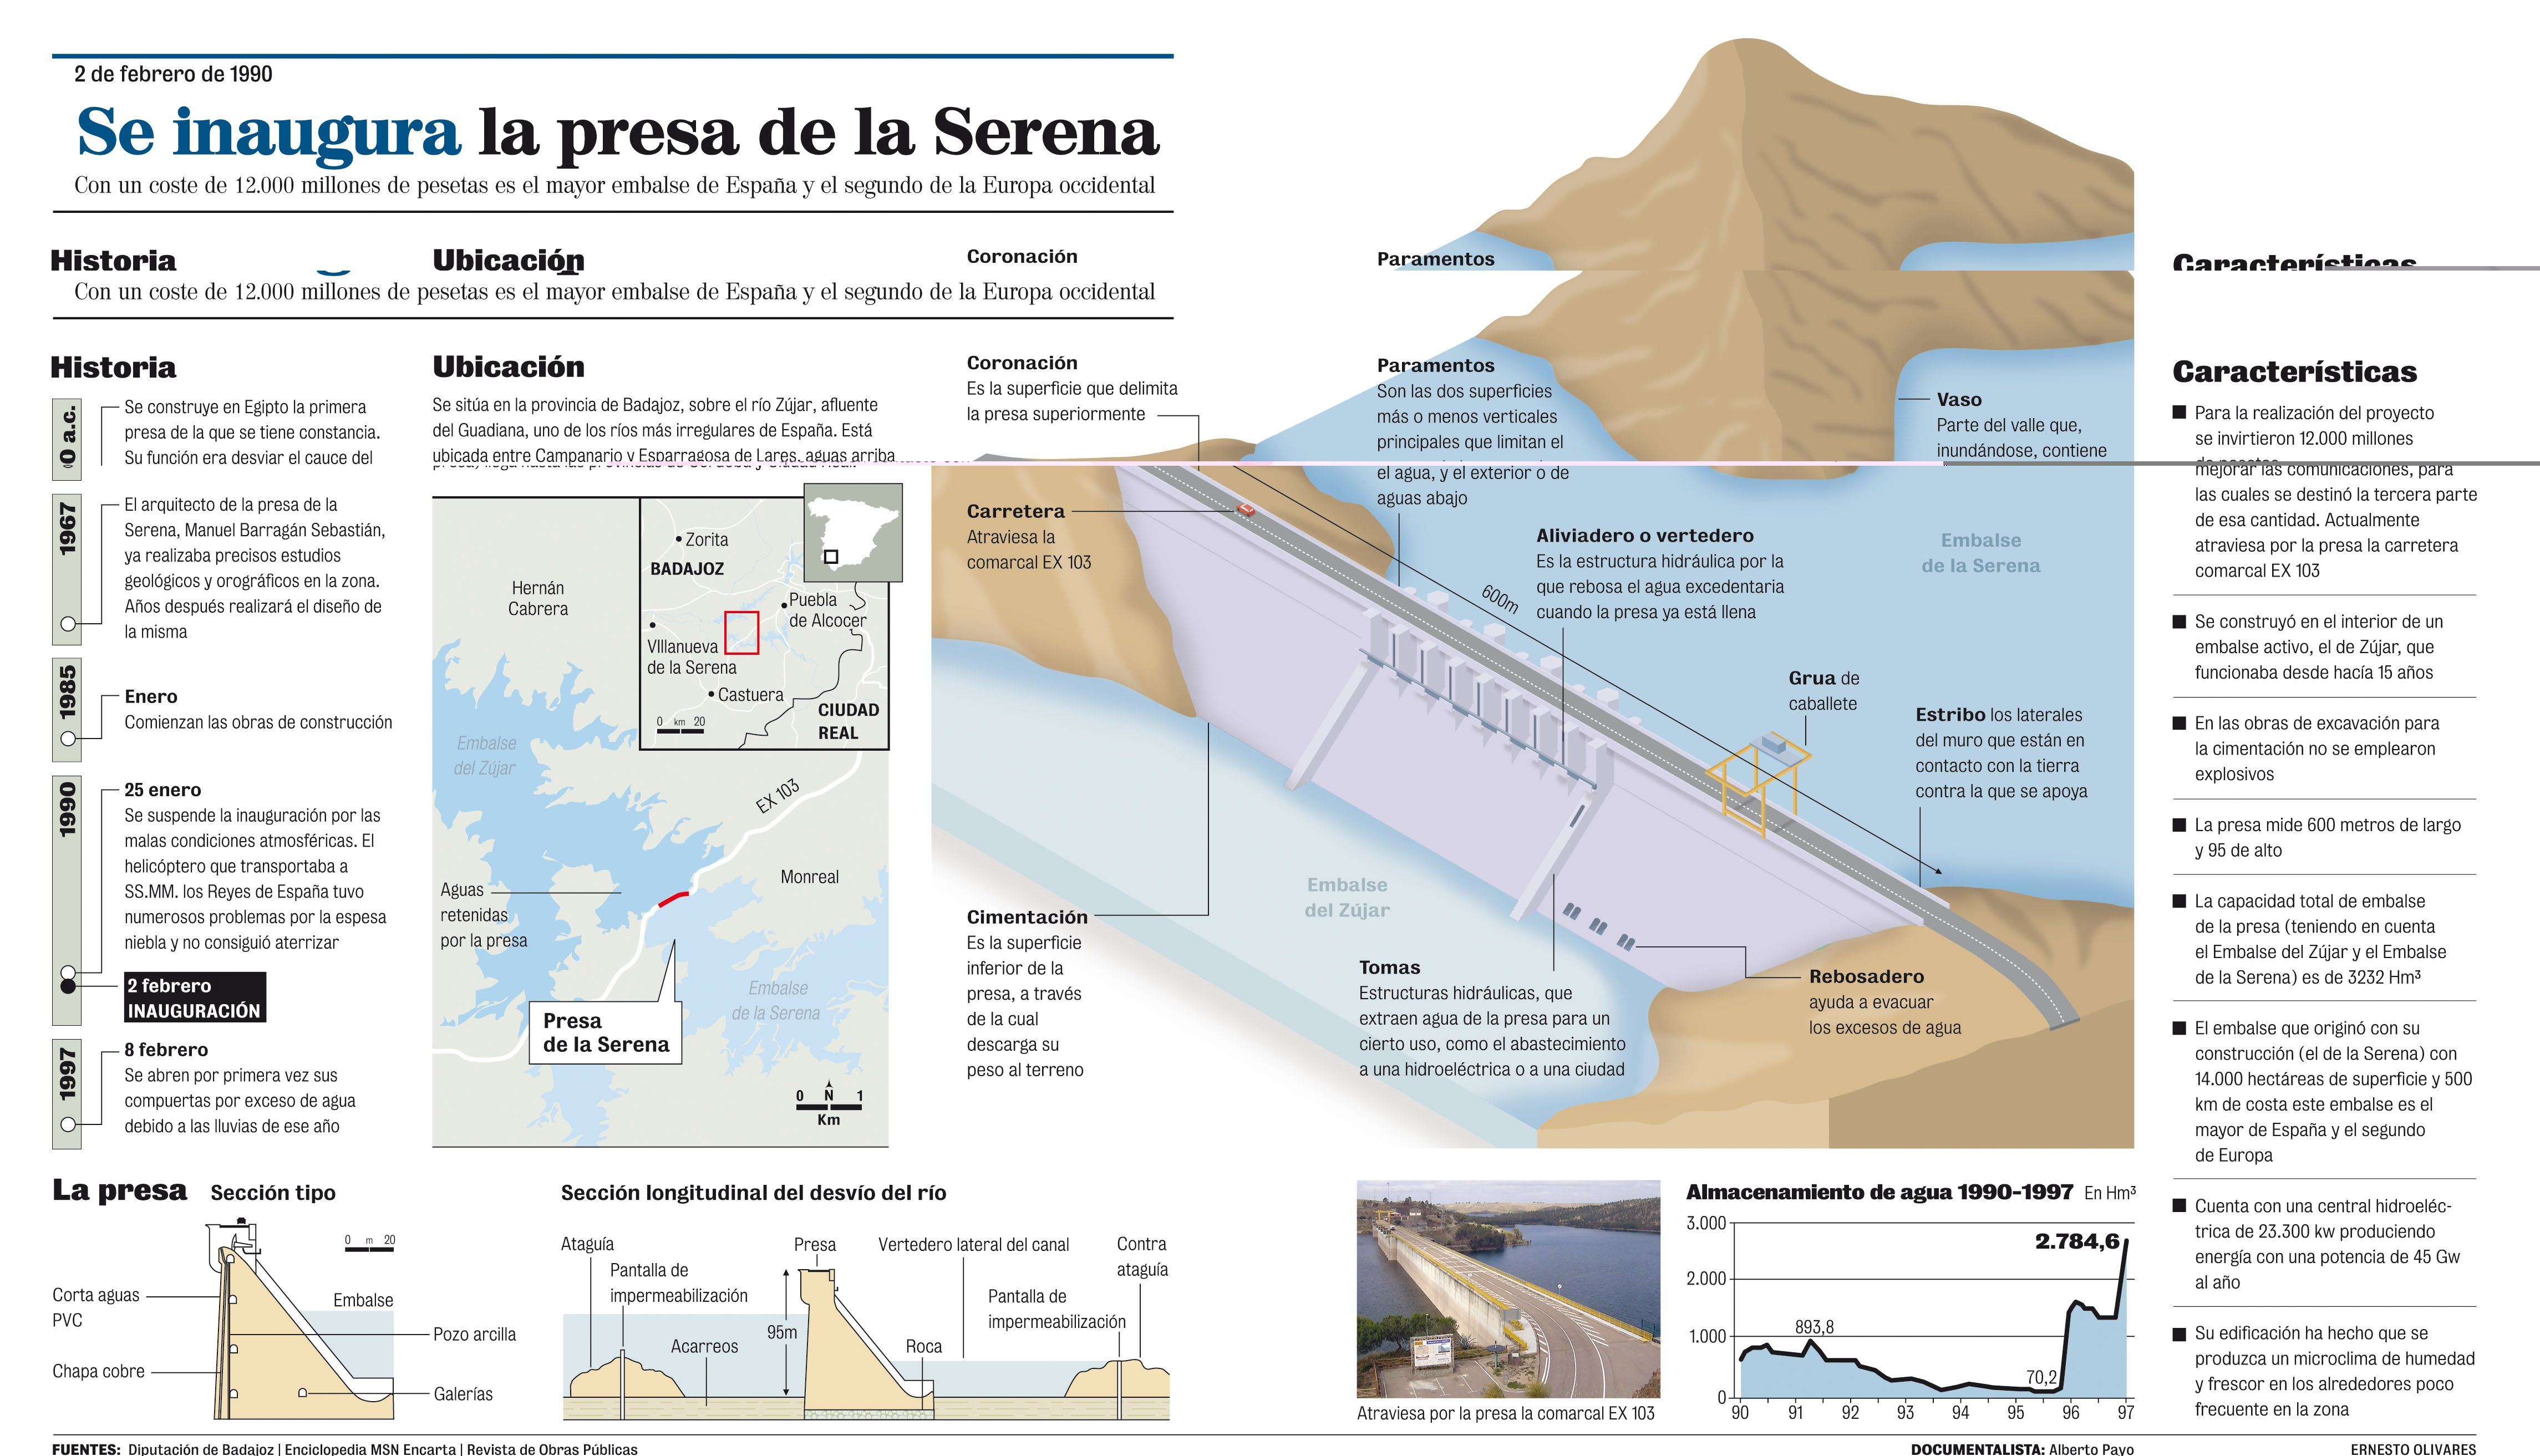 Infographics: The opening of the Serena Dam